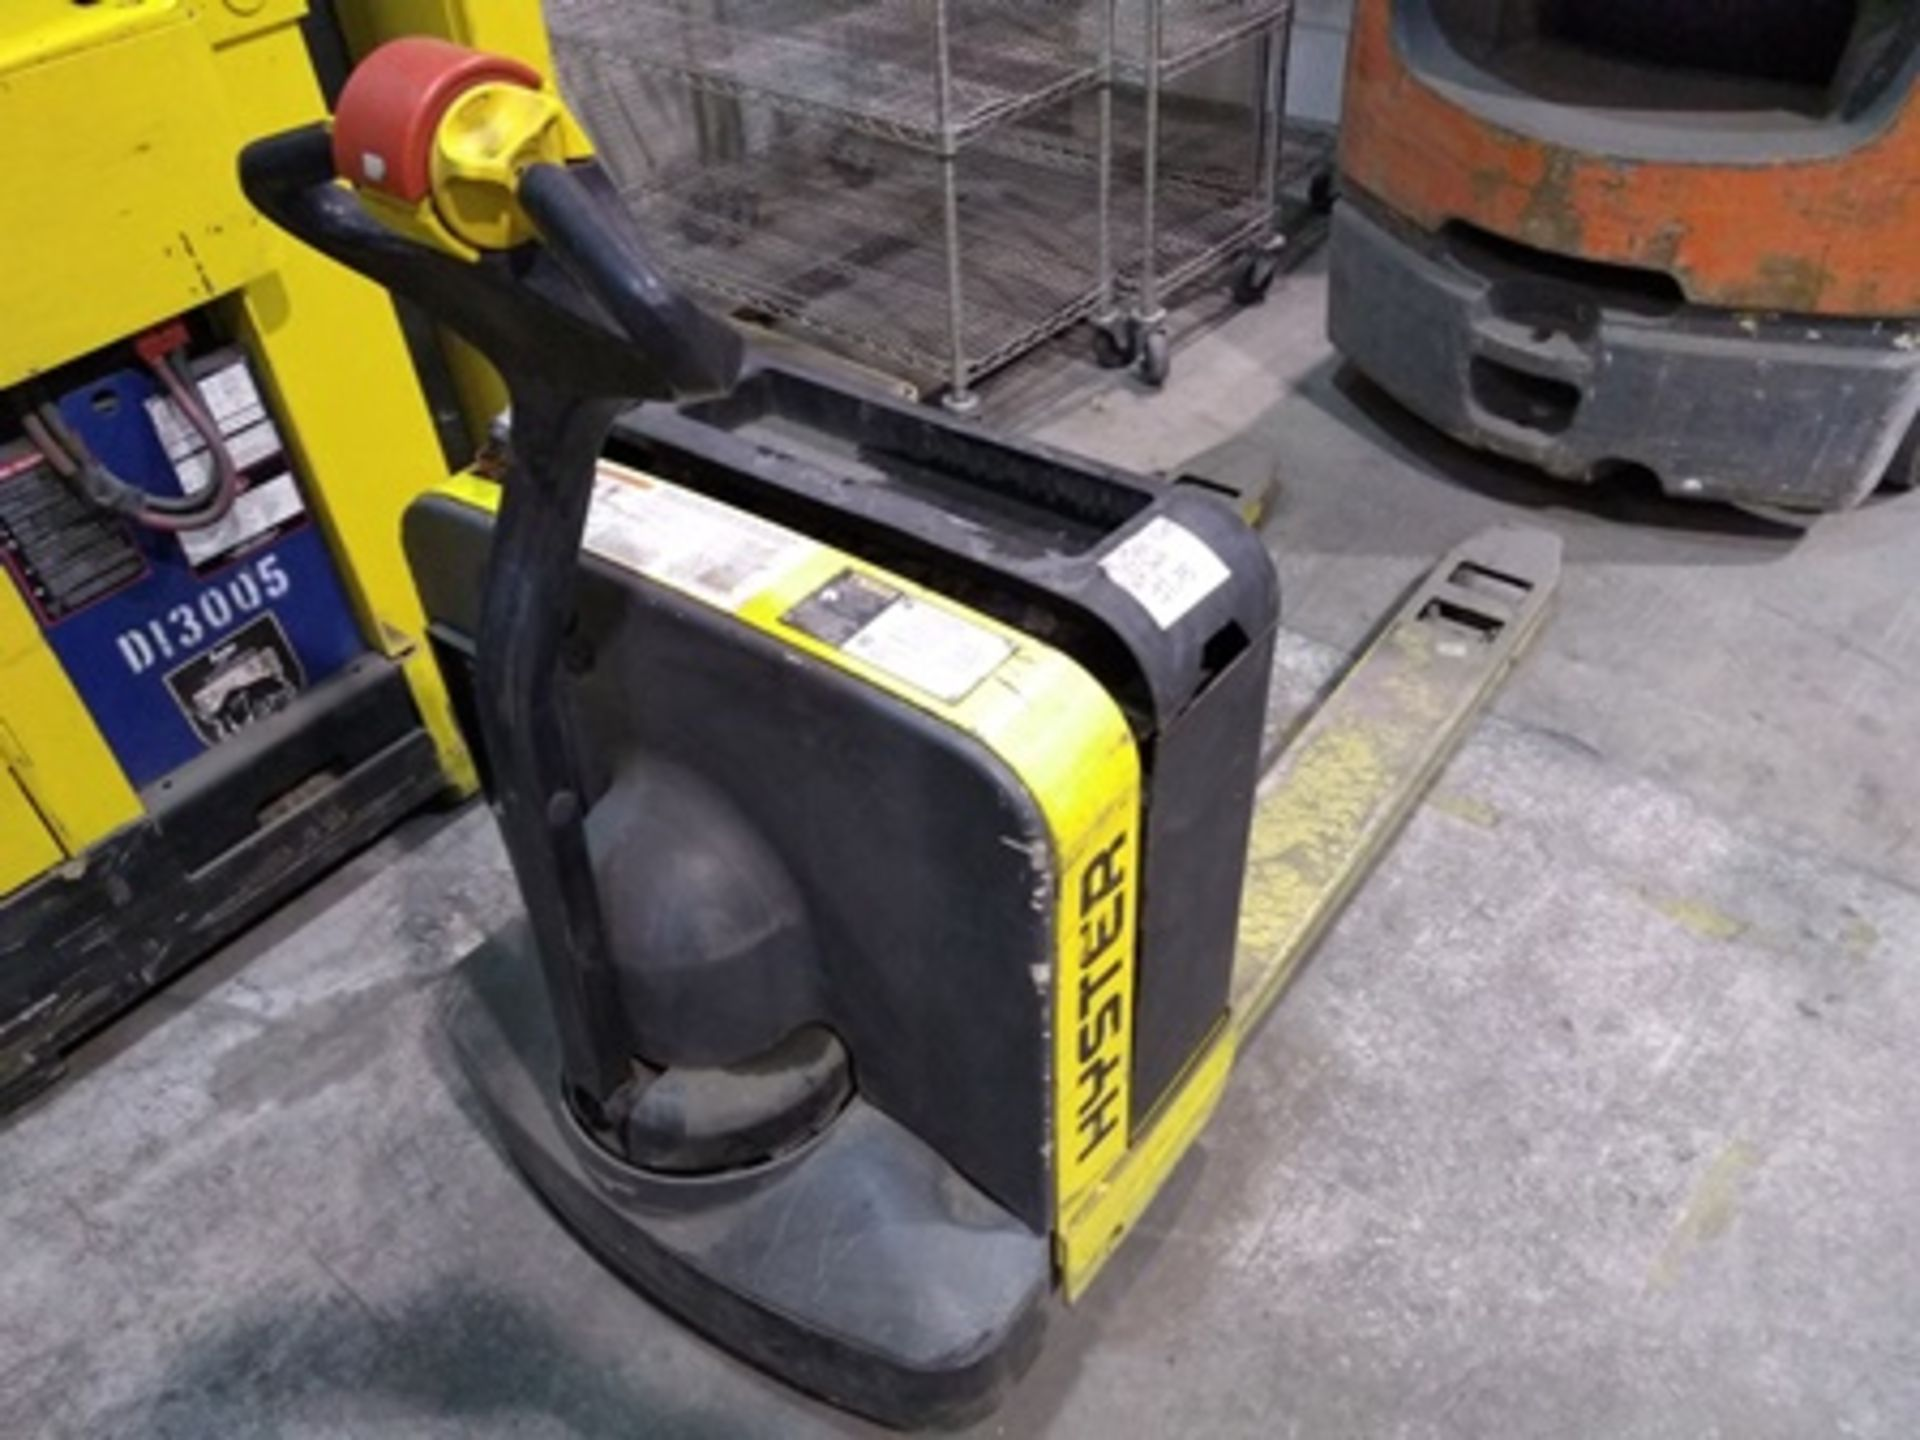 Lot 15 - Hyster Electric Pallet Jack, model W40z, max load 4,000 pounds, built-in charger and 24V battery